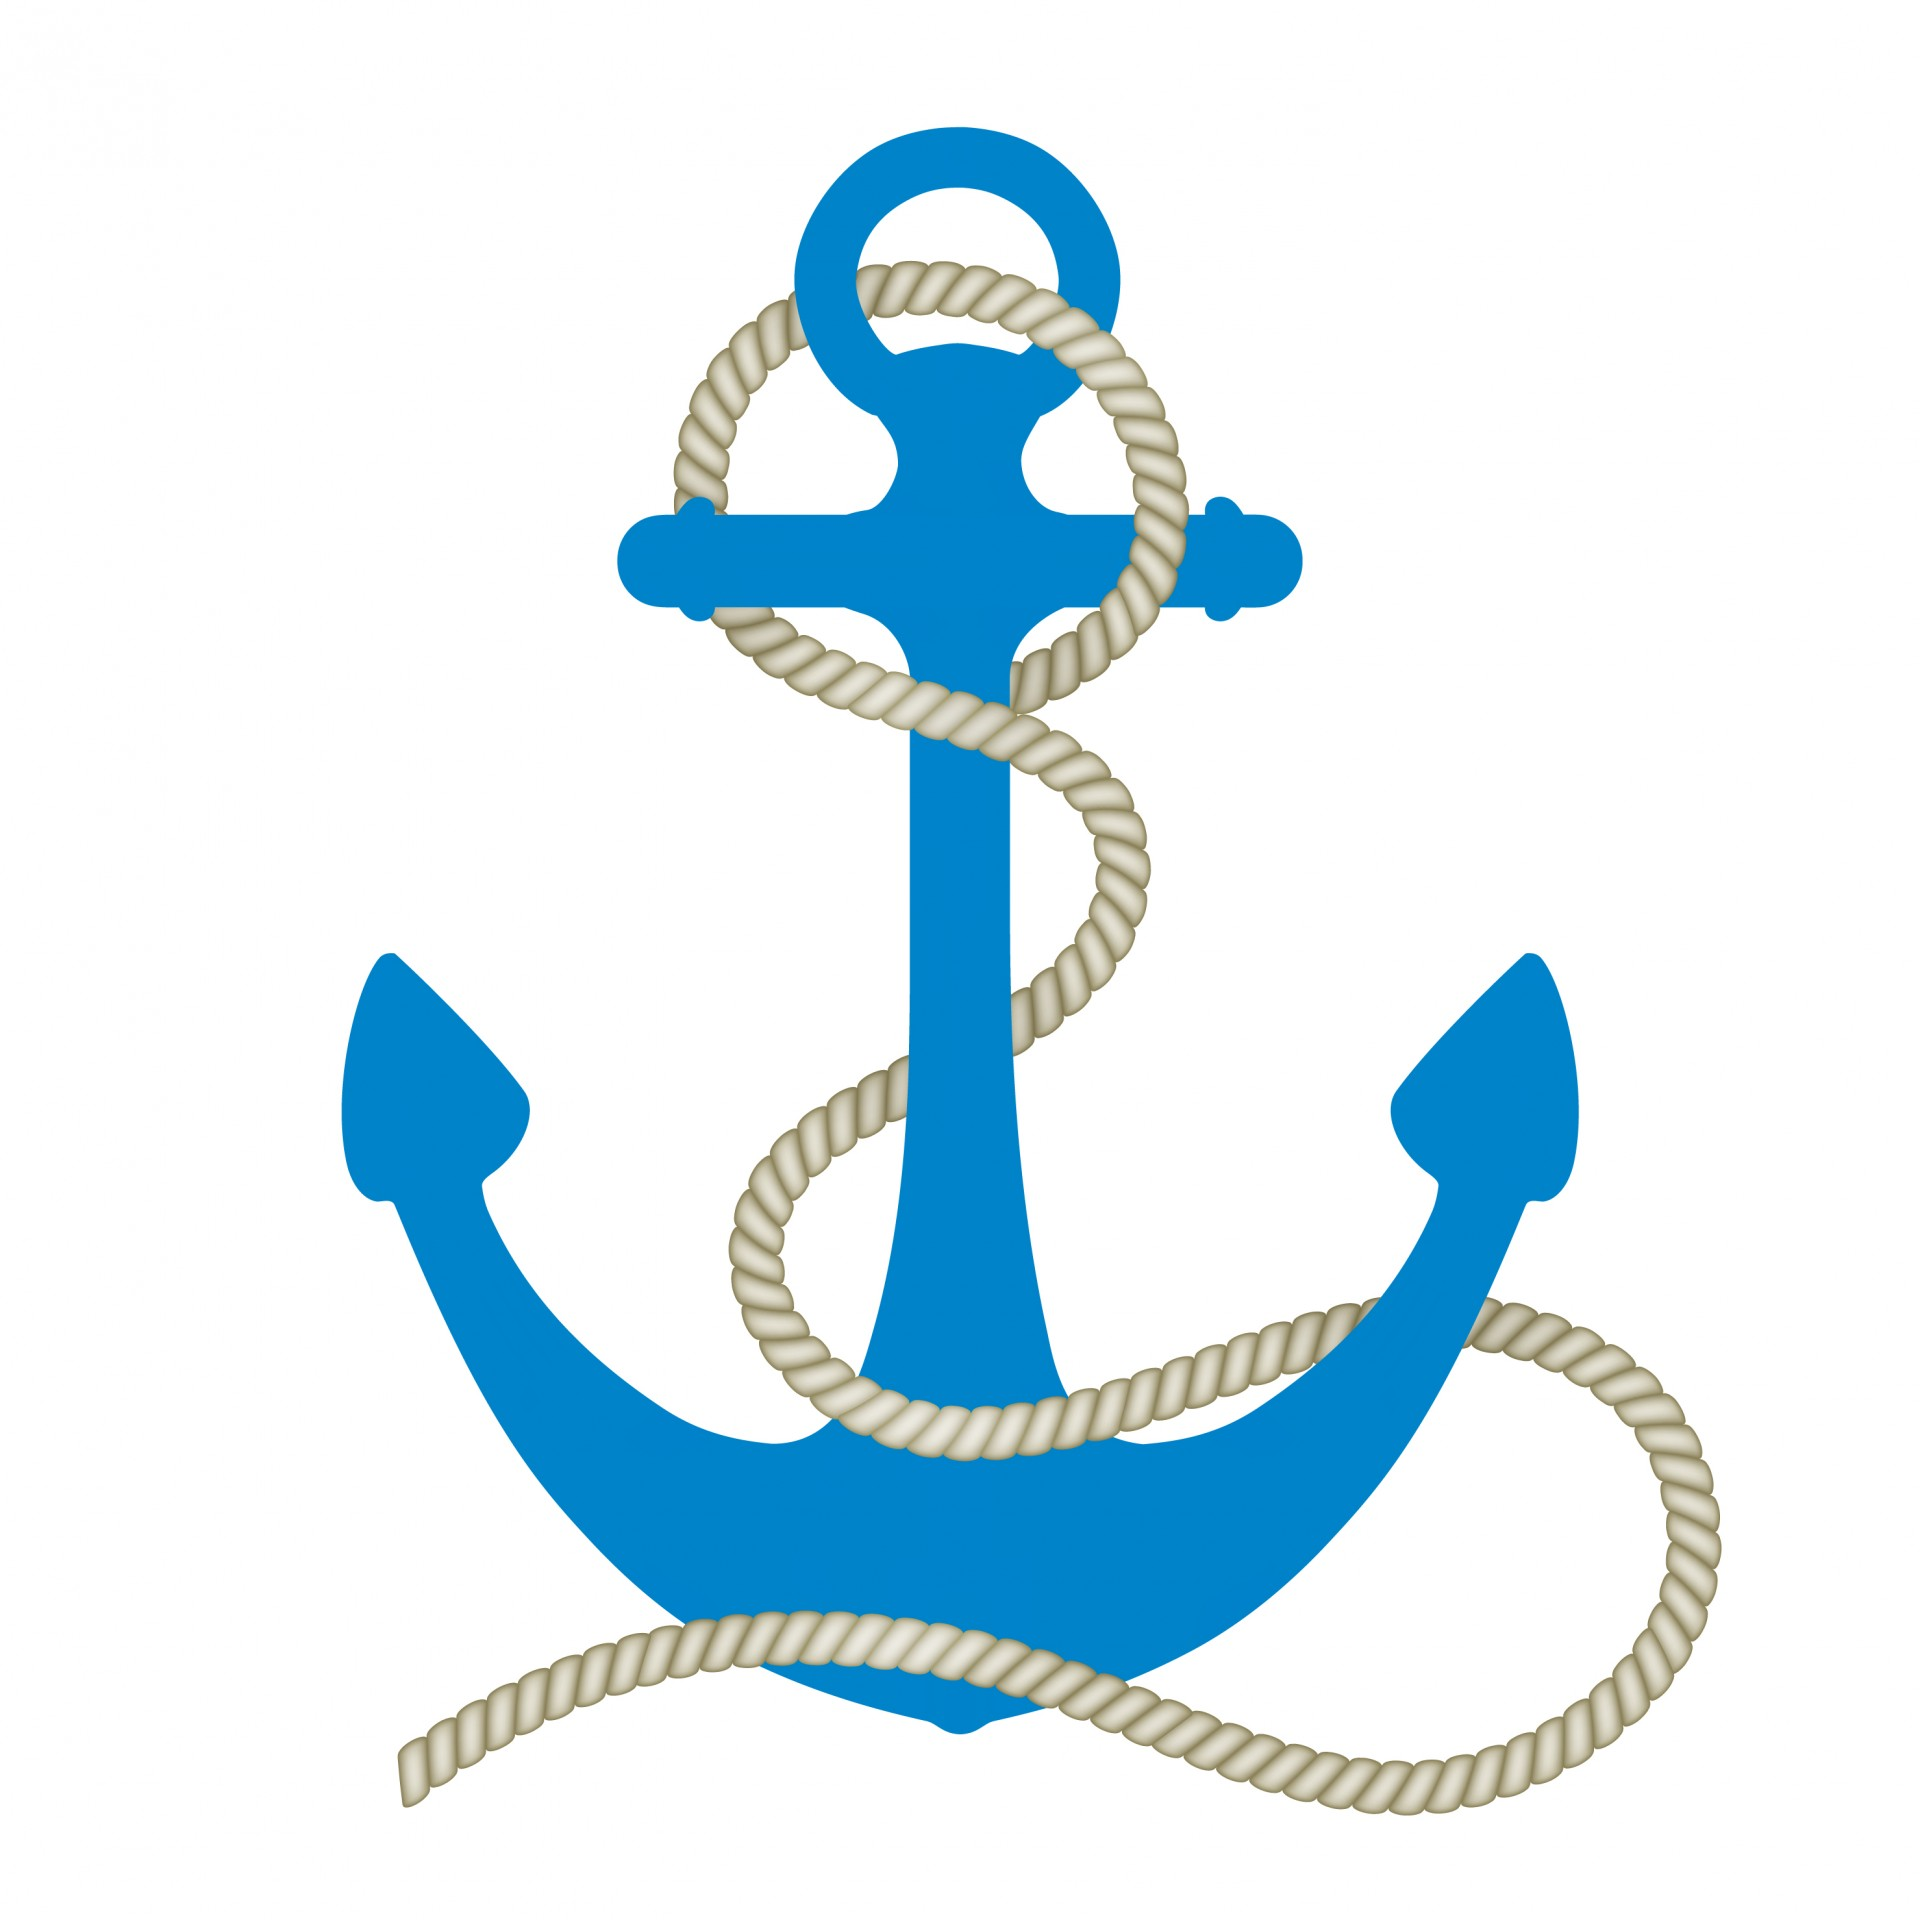 1920x1920 Anchor Clipart Free Stock Photo